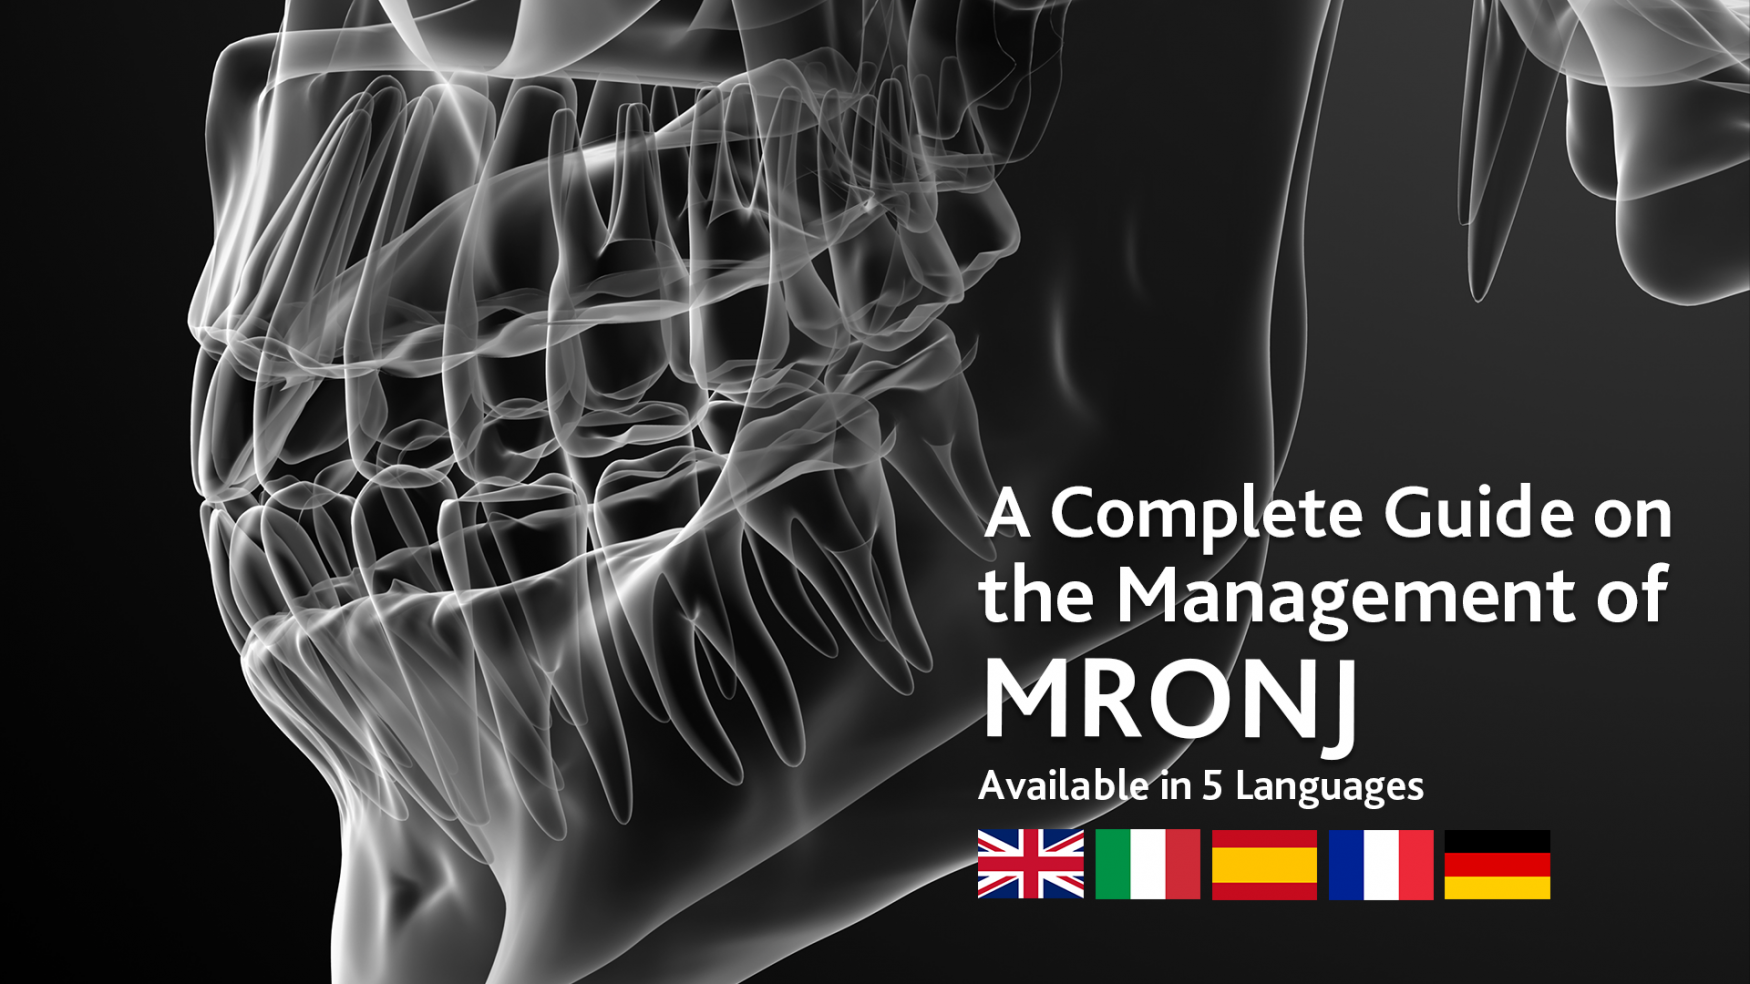 A Complete Guide on the Management of MRONJ (Medication-Related Osteonecrosis of the Jaw) - Available in English, French, Italian, German and Spanish